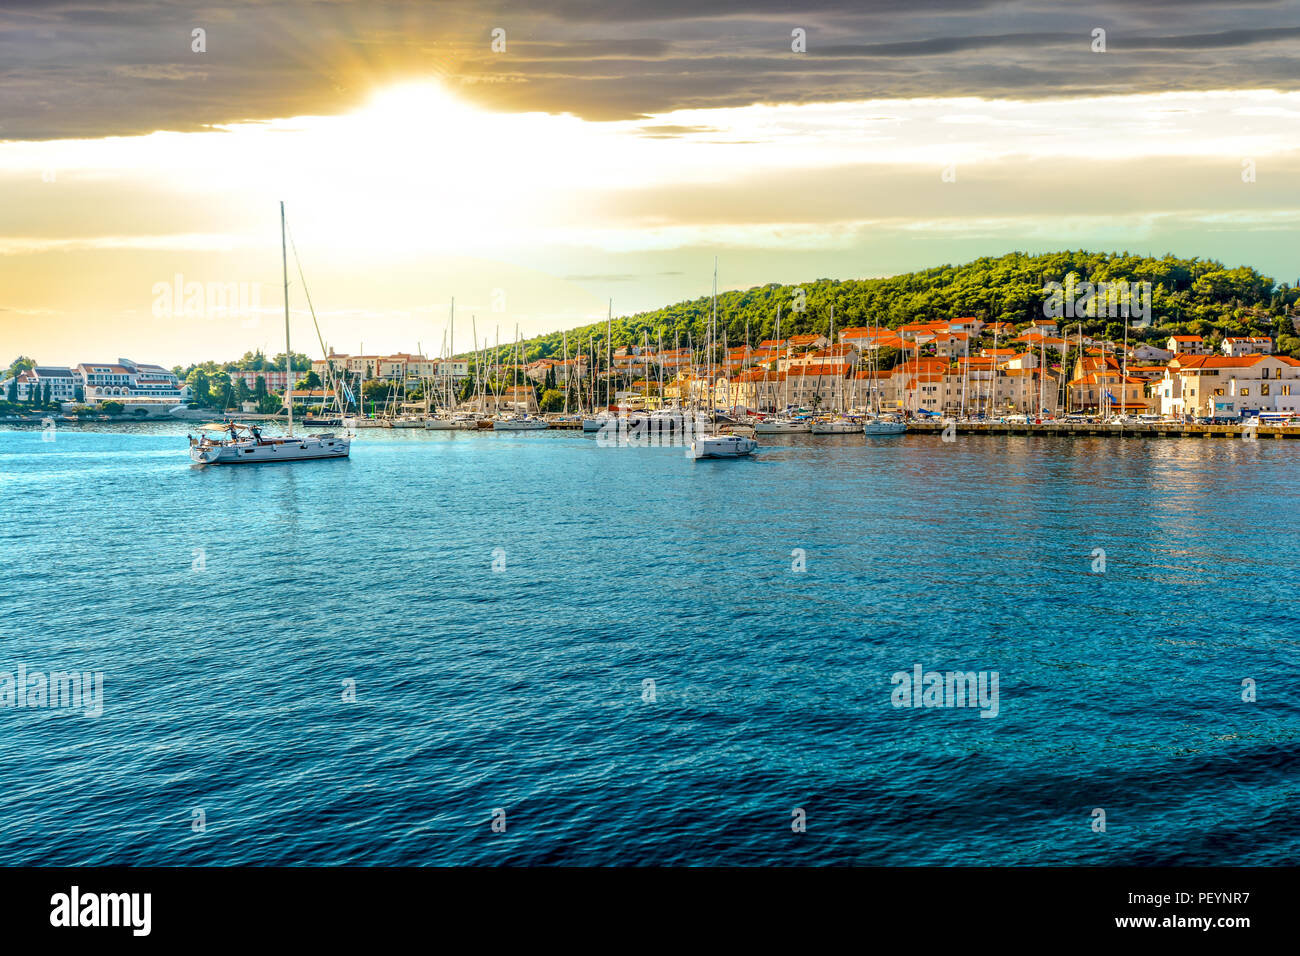 Boats in the harbor of the Croatian coastal city of Hvar, one of the many Islands near Dubrovnik and Korcula on the Dalmatian Coast of Croatia - Stock Image